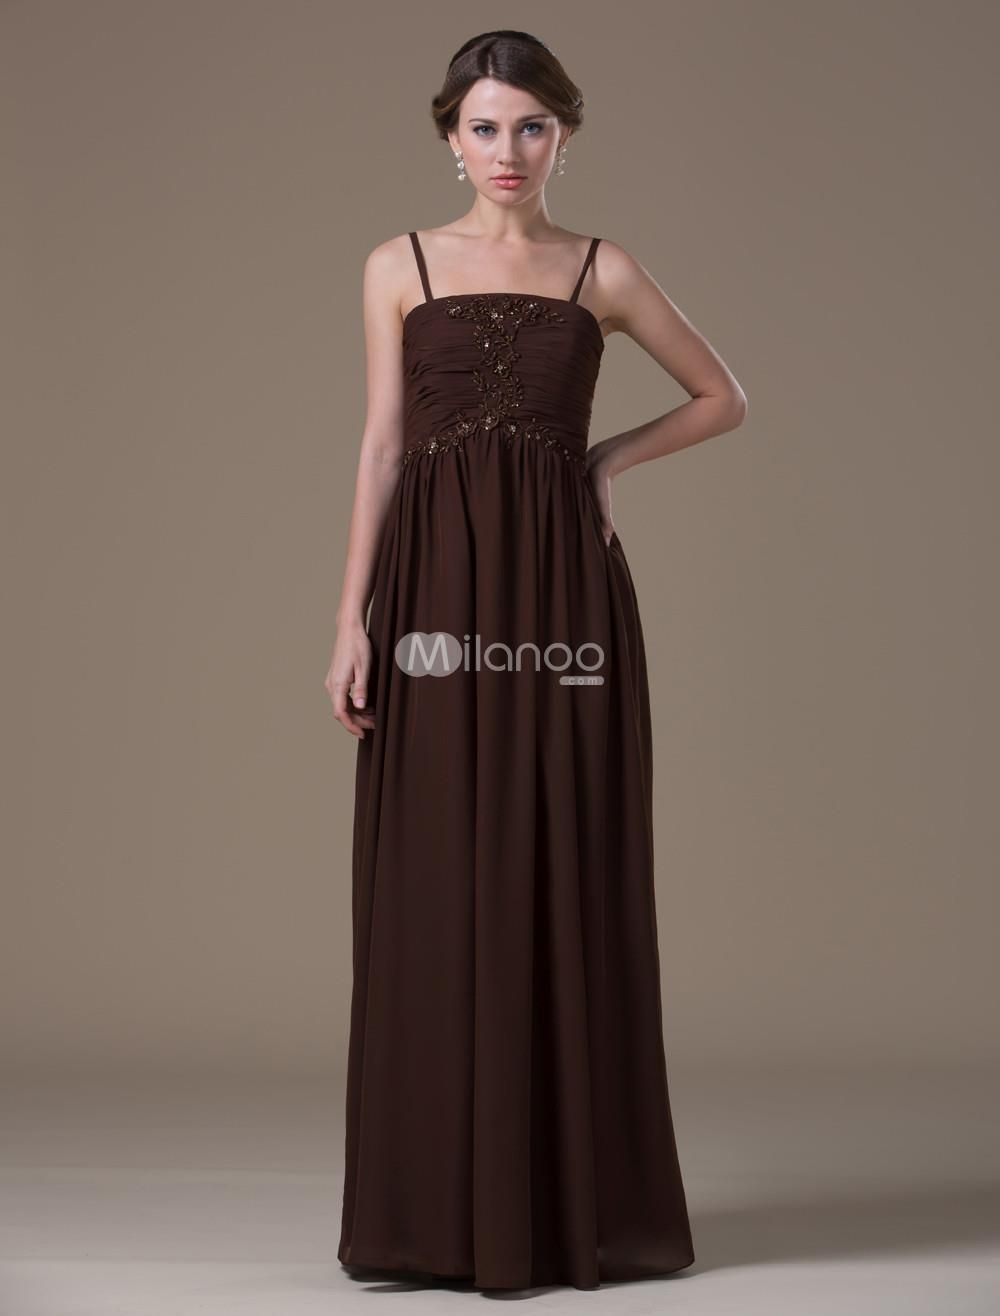 Brown classical spandex satin floor length maternity bridesmaid brown classical spandex satin floor length maternity bridesmaid dress when it comes to buying maternity dresses you dont have to sacrifice style for ombrellifo Image collections